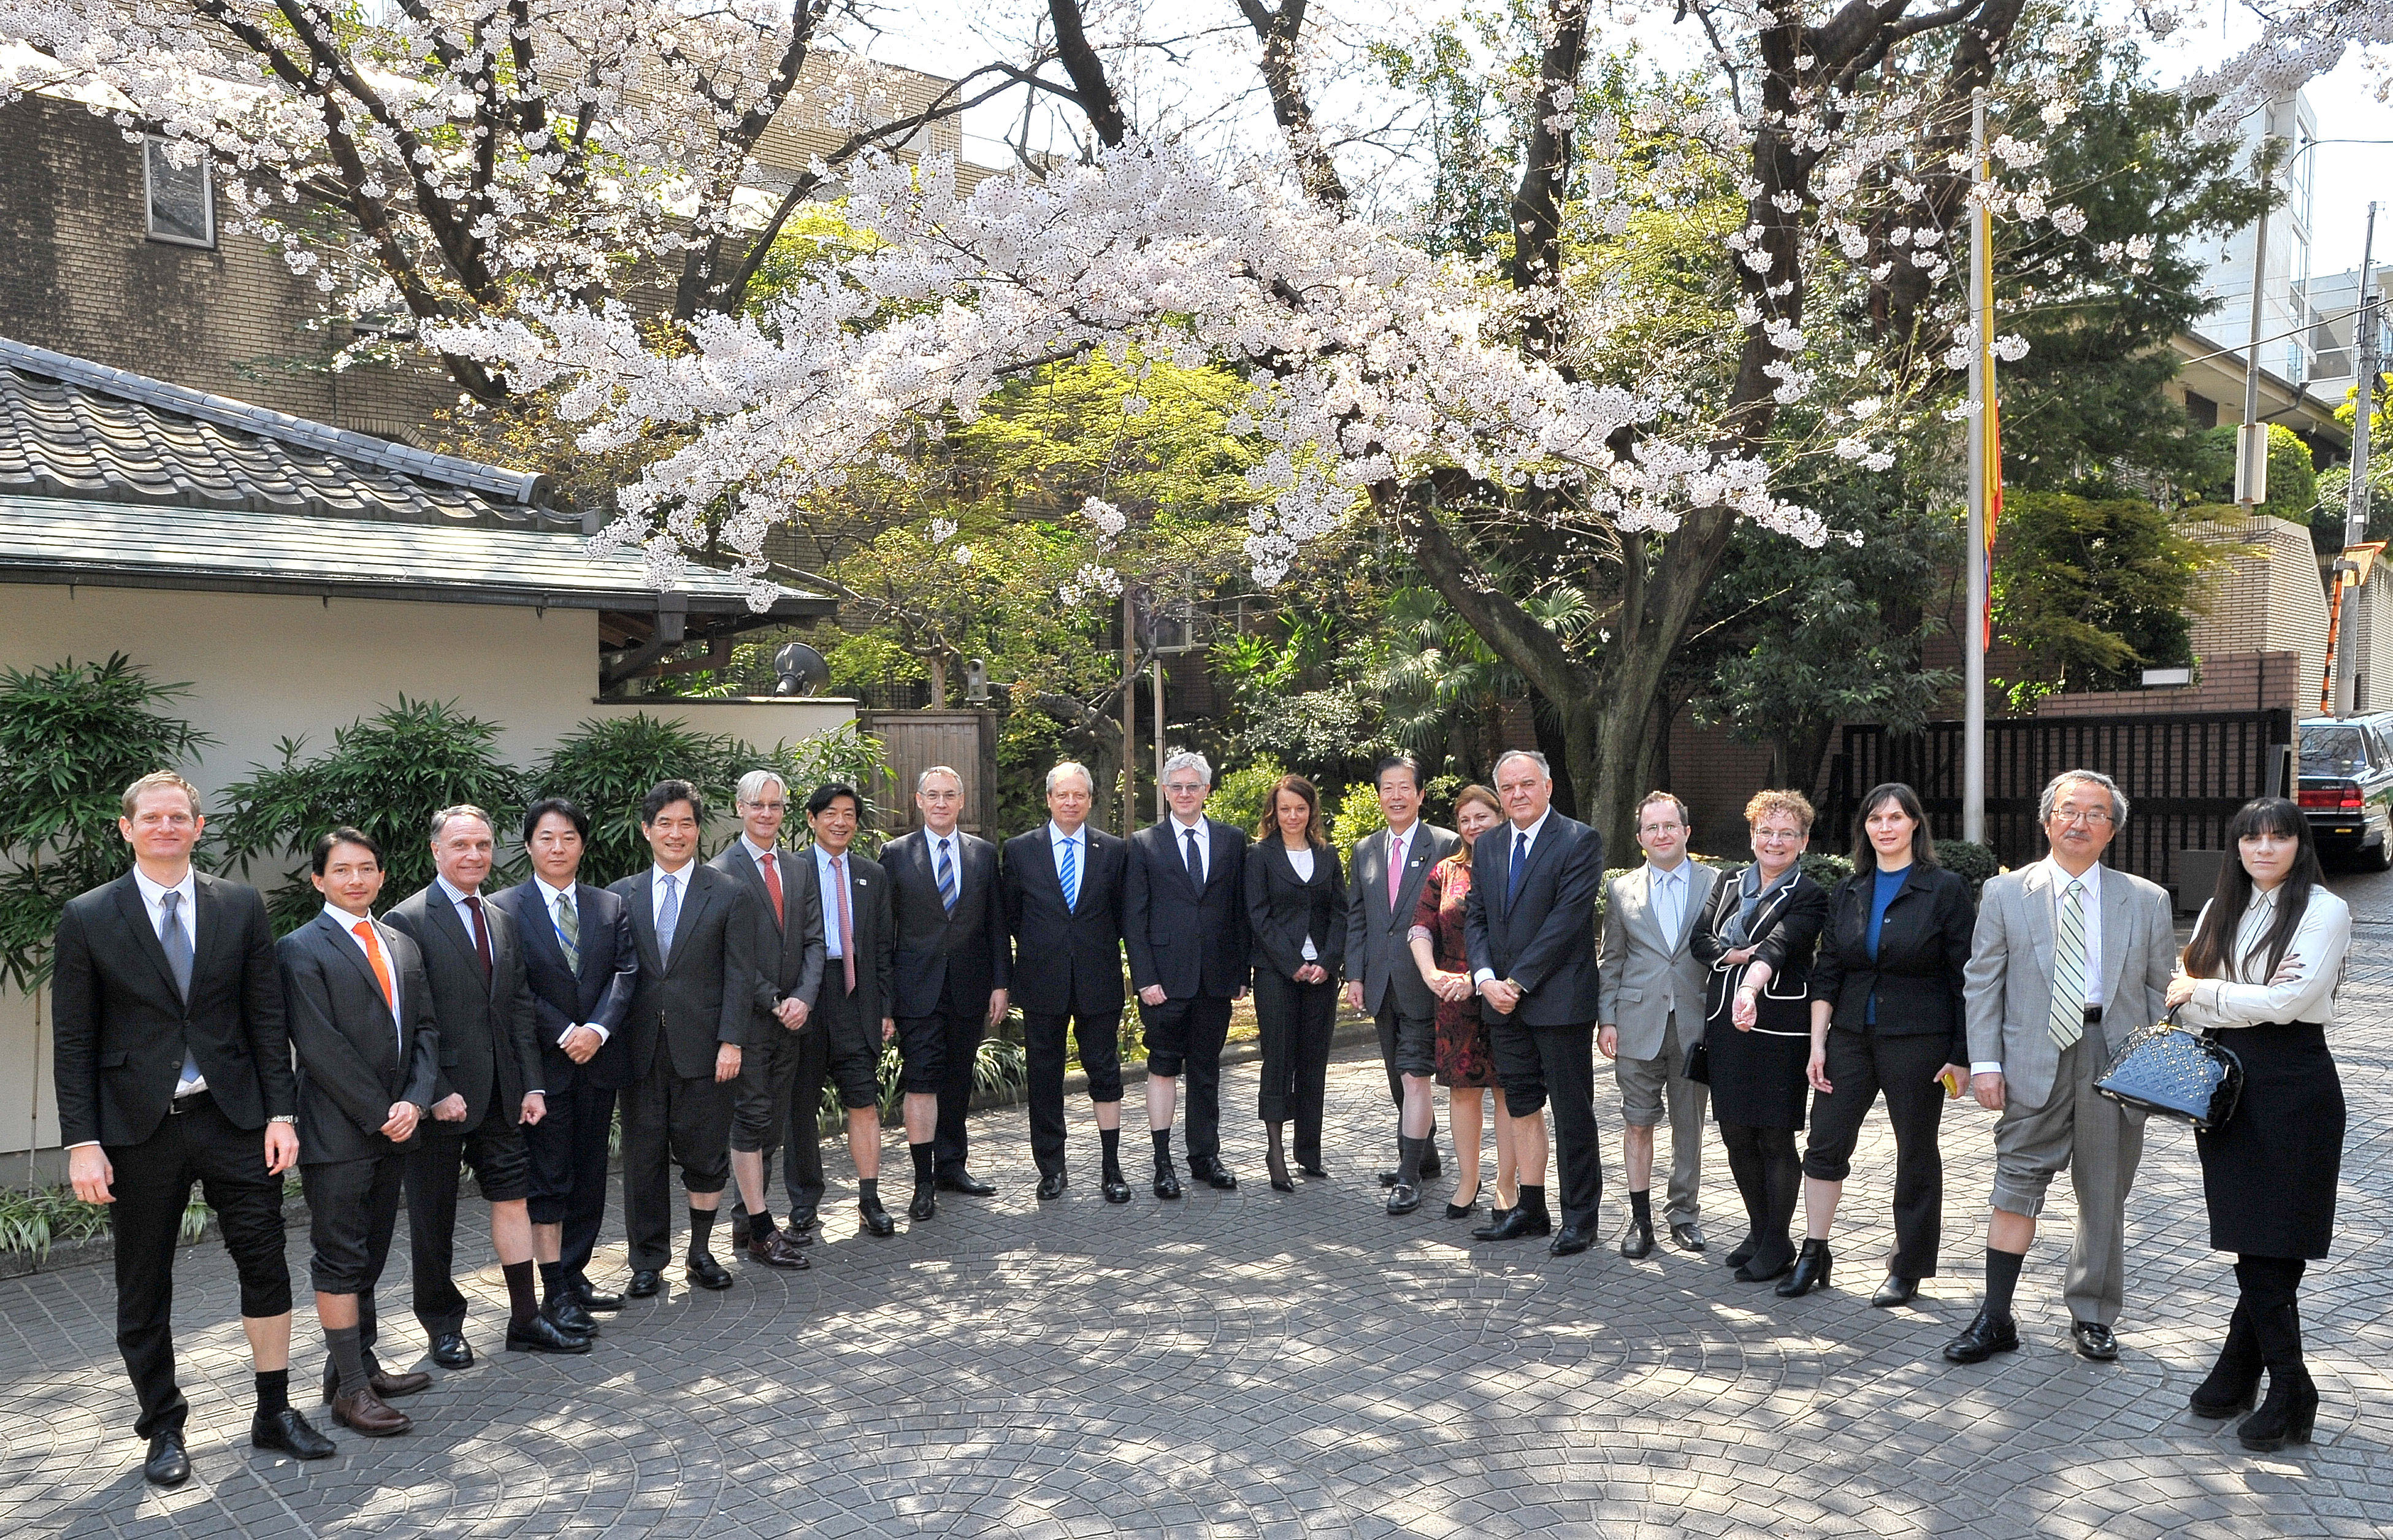 Ambassadors, diplomats, ministry staff and members of the parliamentary friendship groups show their support at the Colombian embassy in Tokyo on April 4. |  YOSHIAKI MIURA